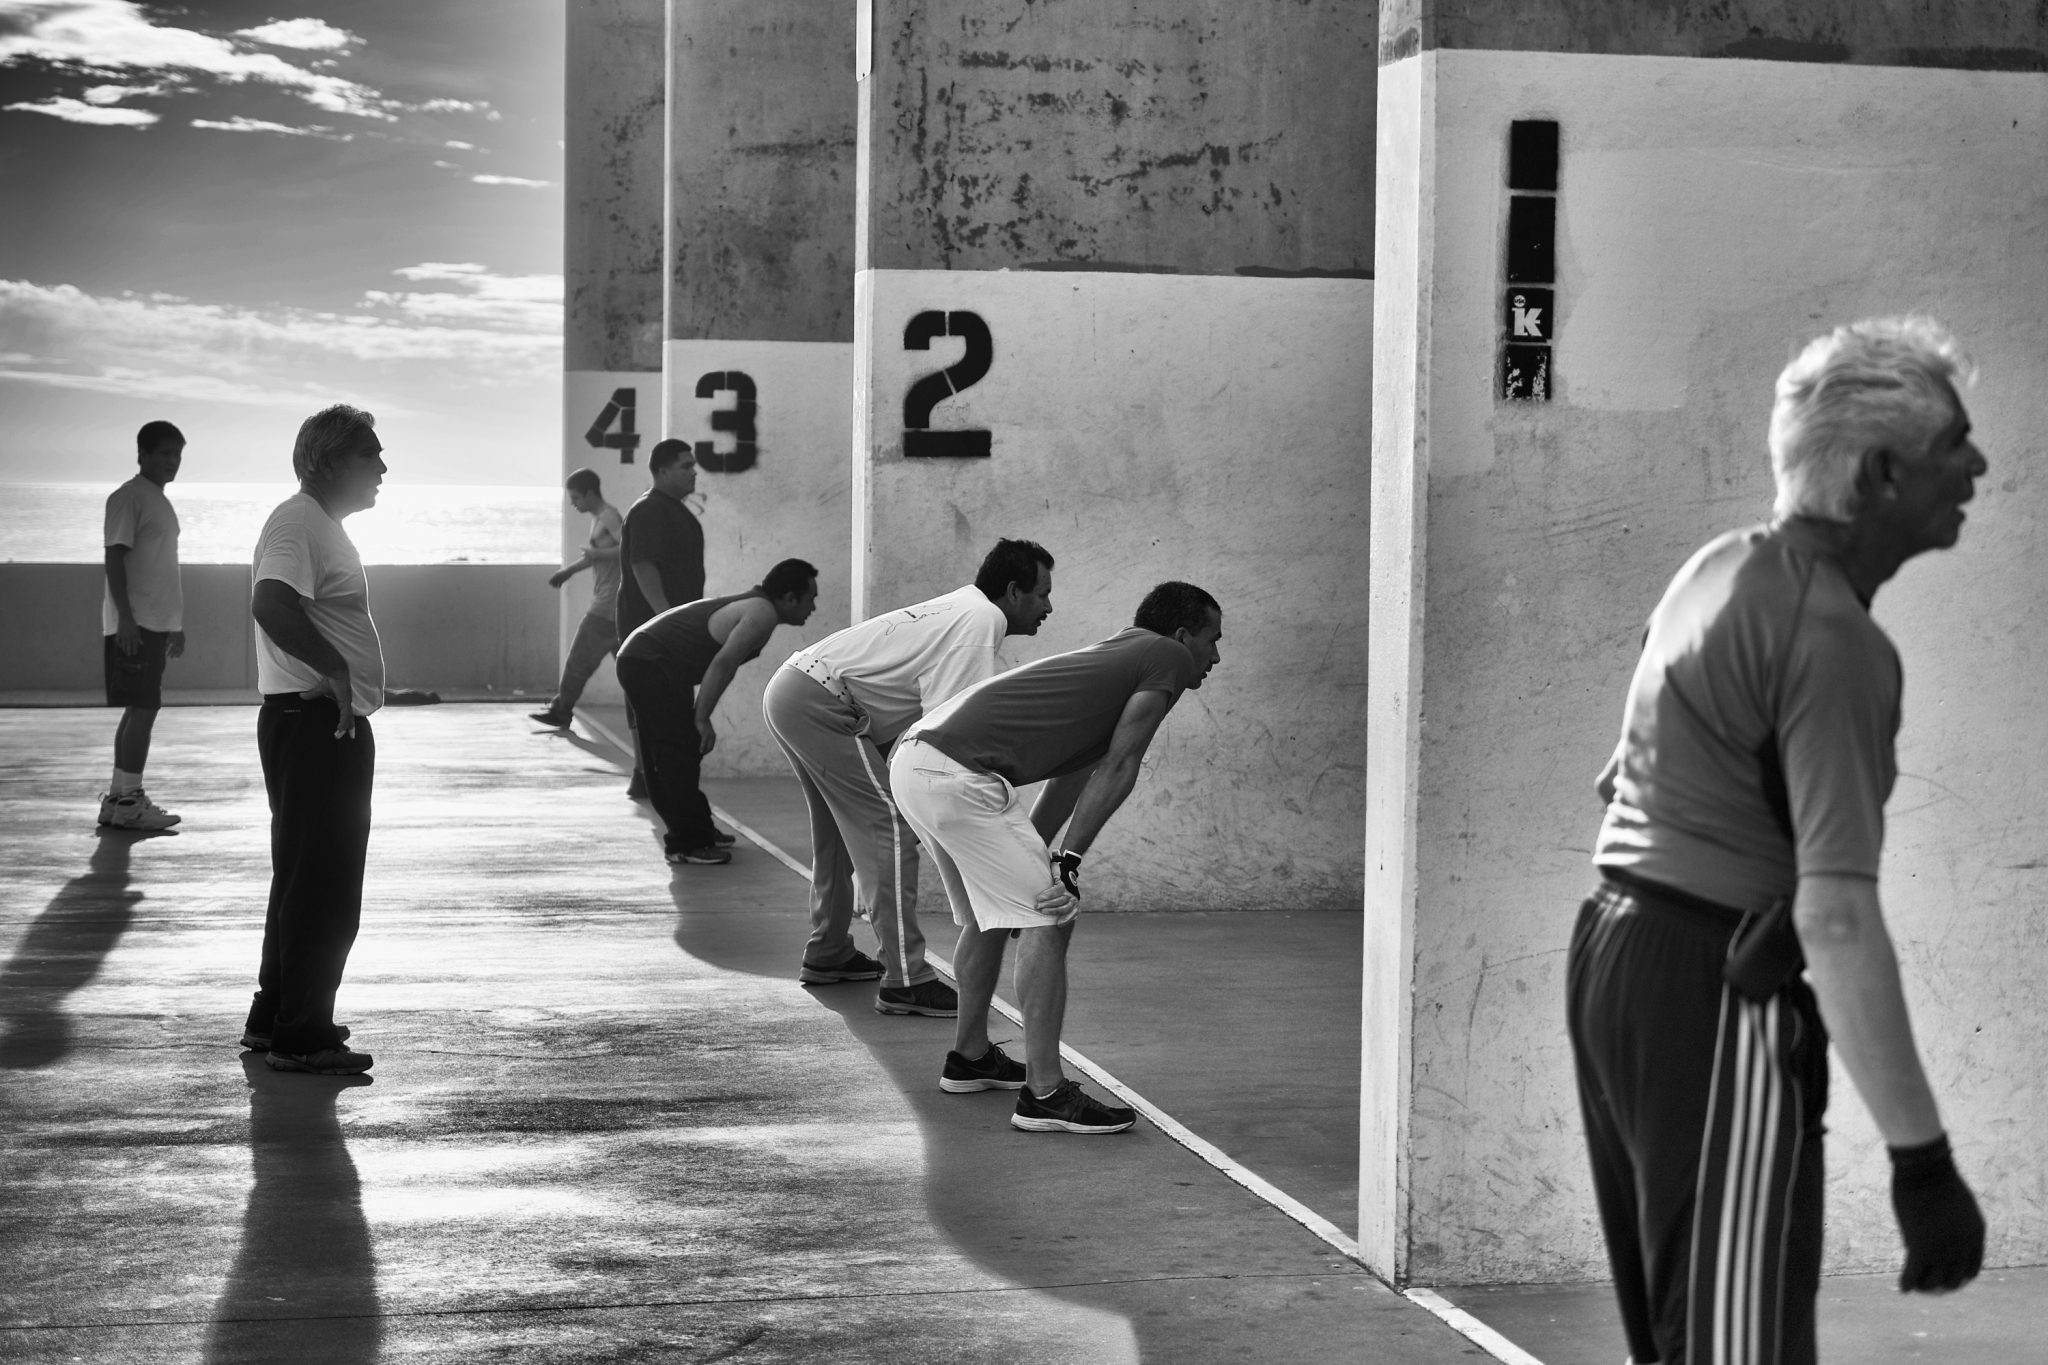 Handball Court, Venice, CA